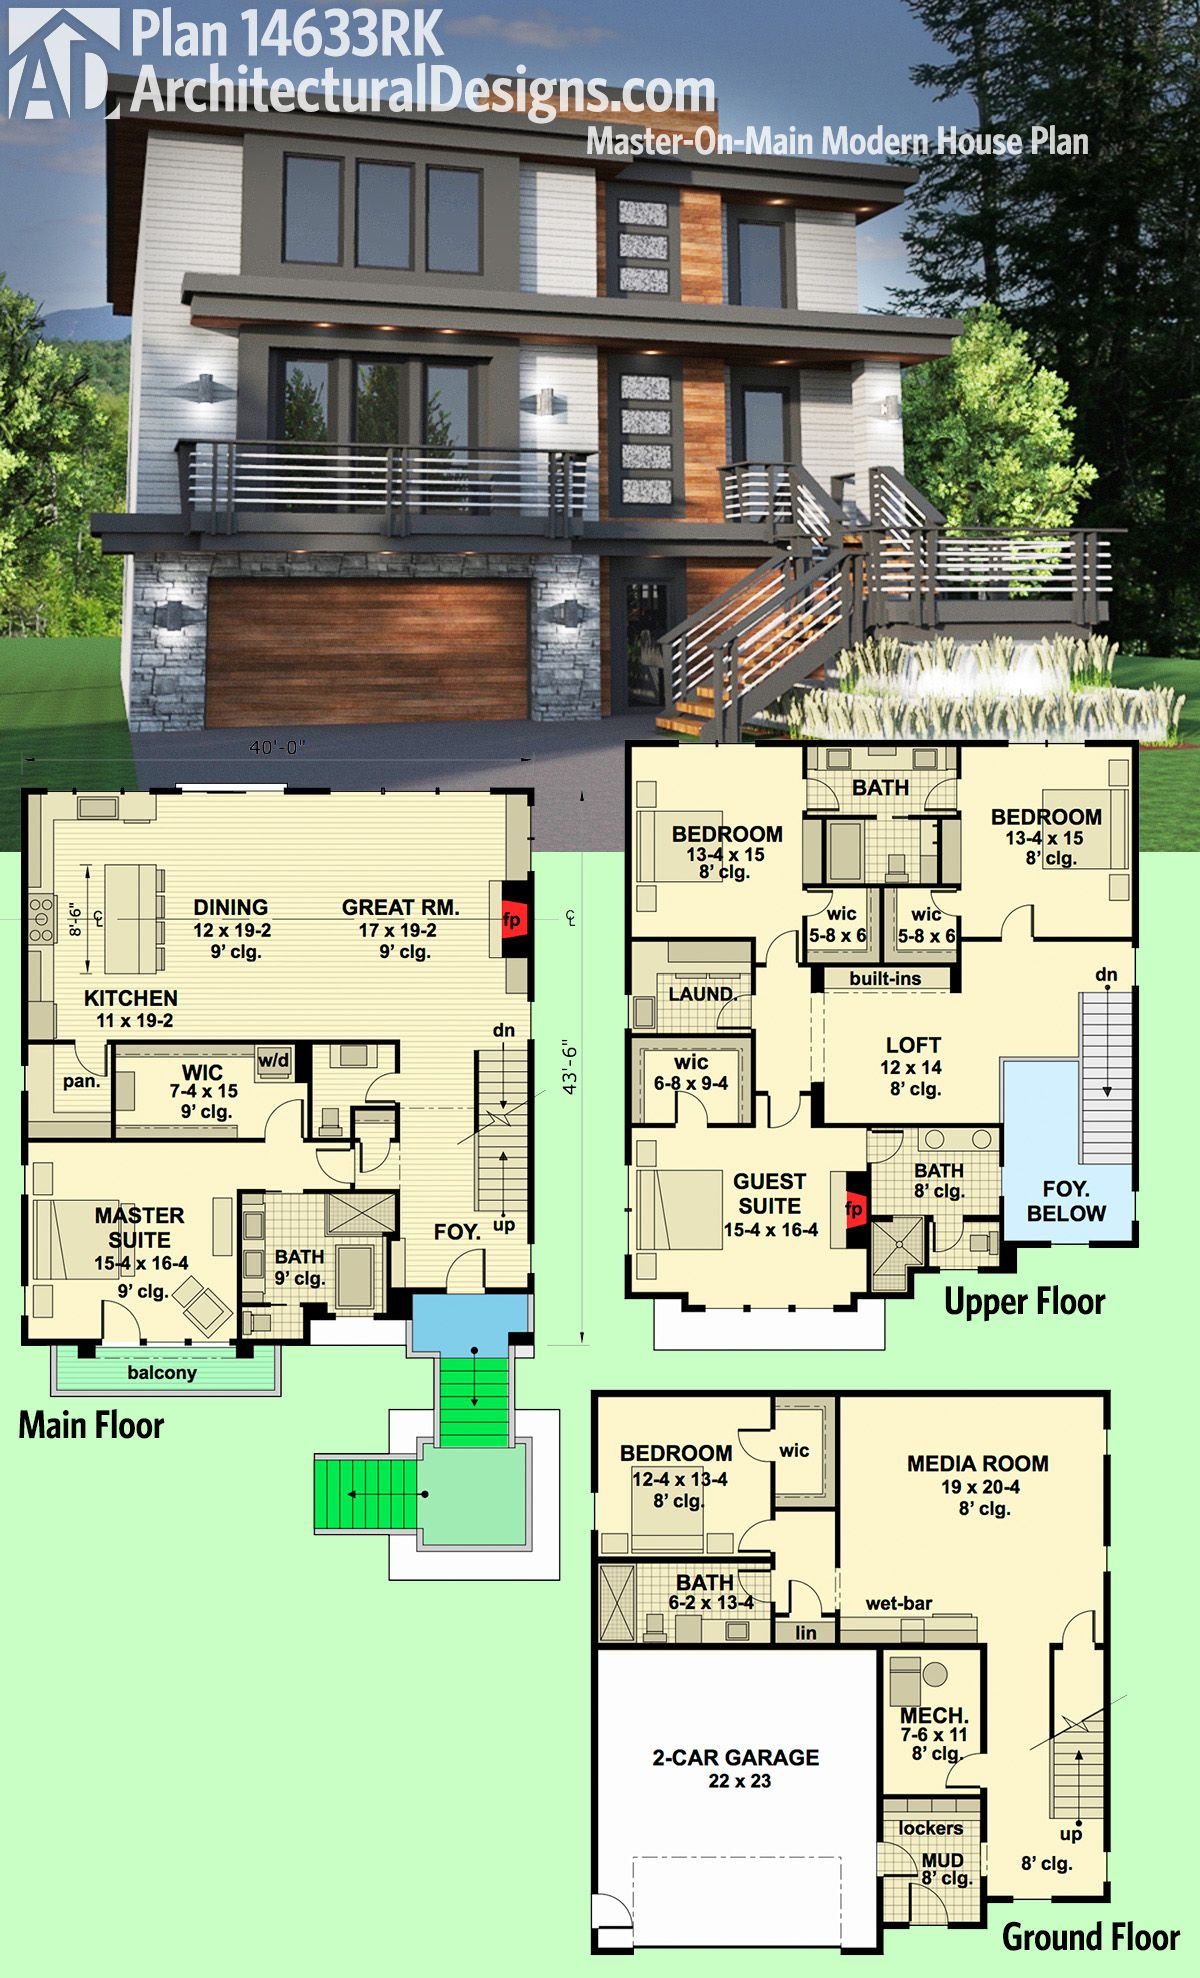 Plan 14633rk master on main modern house plan modern for Modern house designs and floor plans